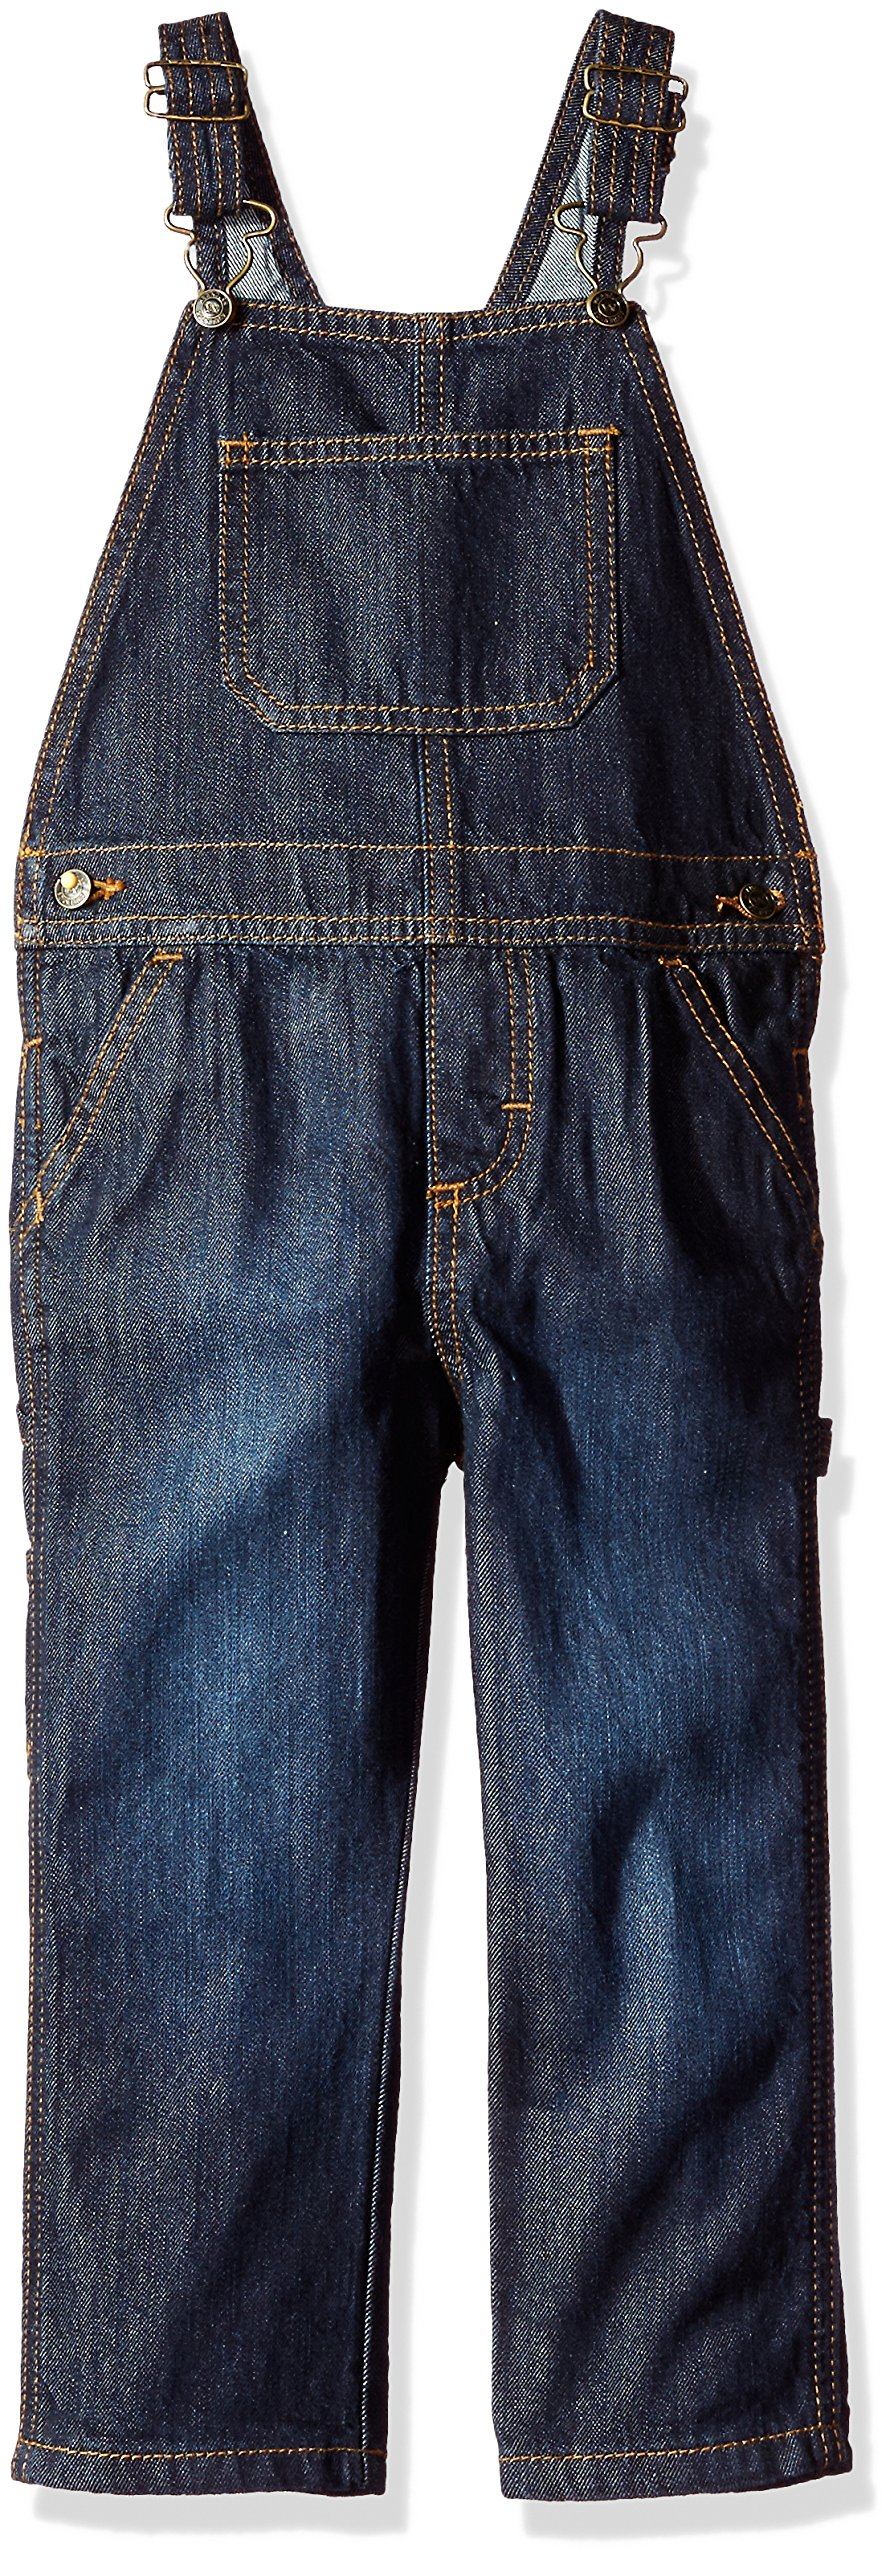 ebf74306 Best Rated in Boys' Jeans & Helpful Customer Reviews - Amazon.com